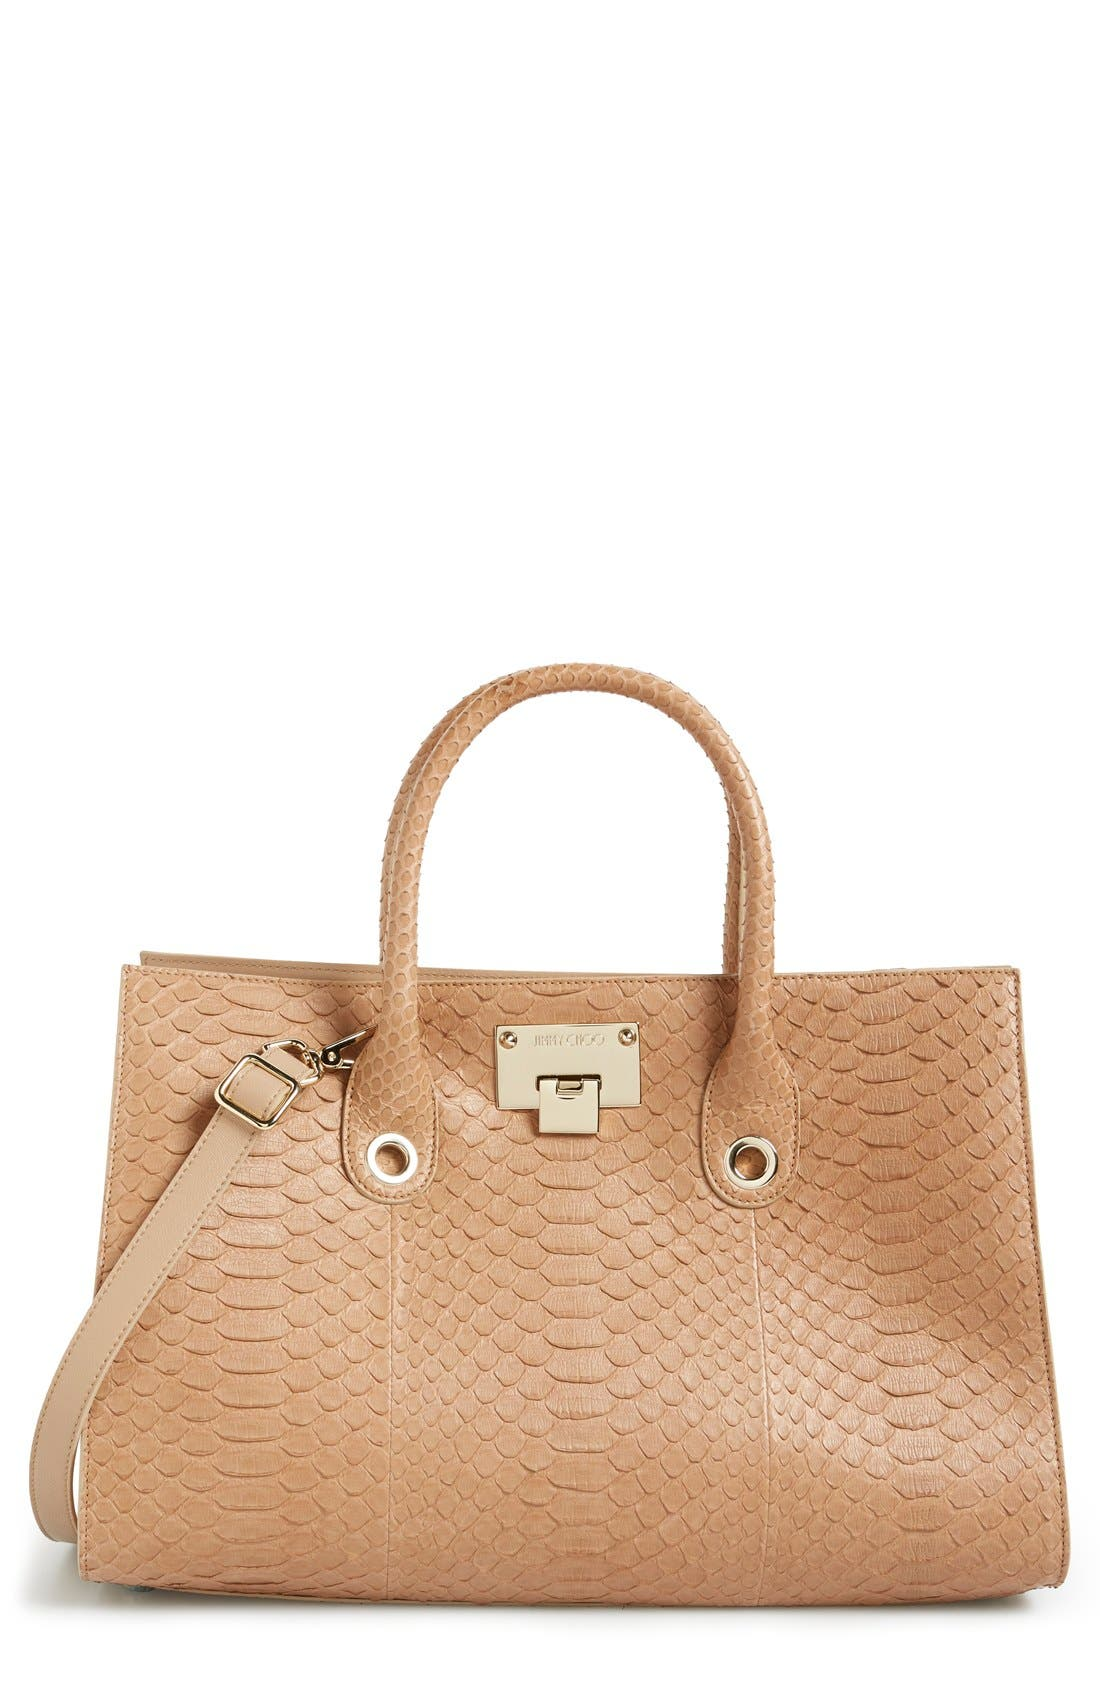 Alternate Image 1 Selected - Jimmy Choo 'Riley' Genuine Python Tote